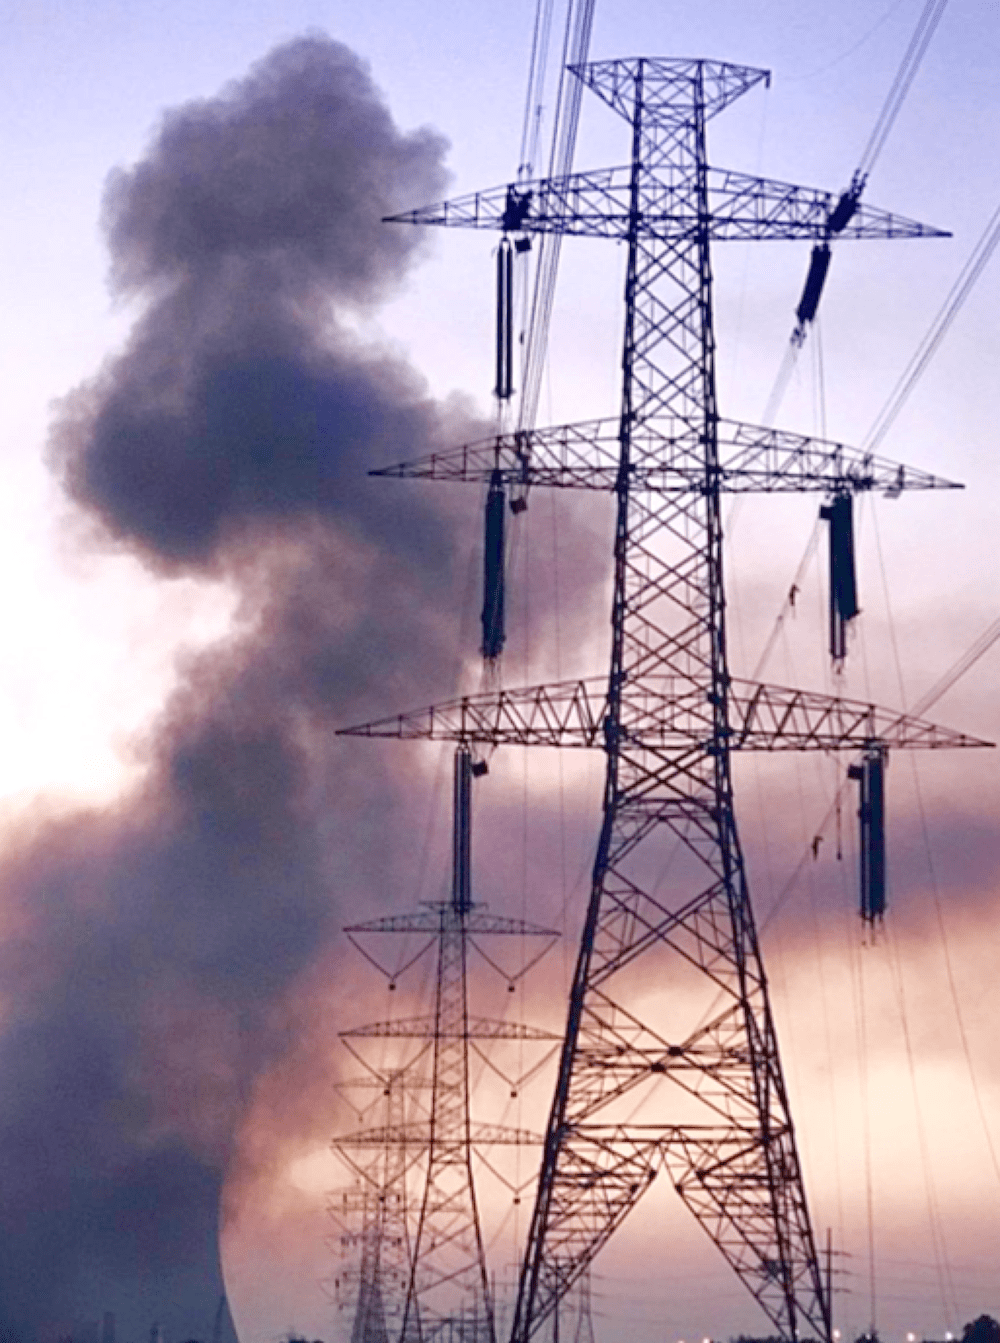 Expanding Grid in Pakistan Confronts Challenges of Pollution, Icing & Lightning (Part 1 of 2) Expanding Grid in Pakistan Confronts Challenges of Pollution